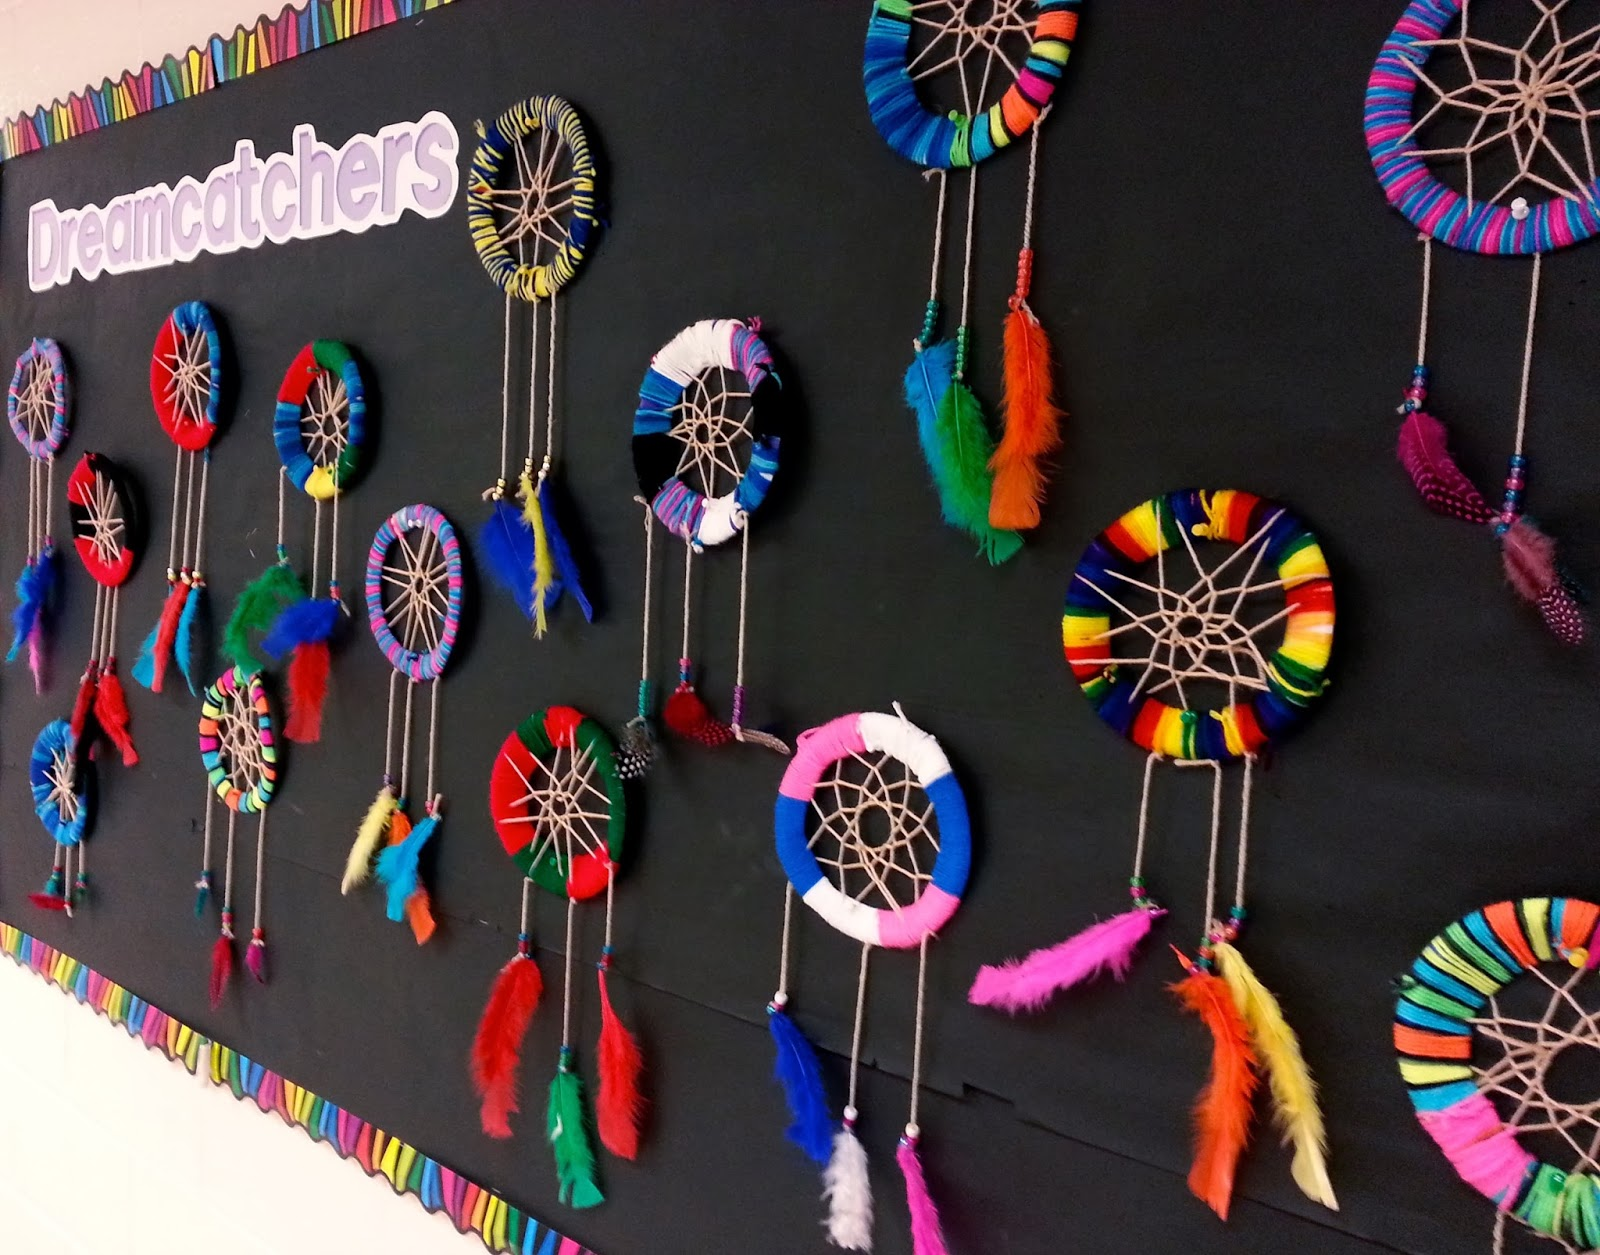 Free Arts And Crafts For Middle School Students